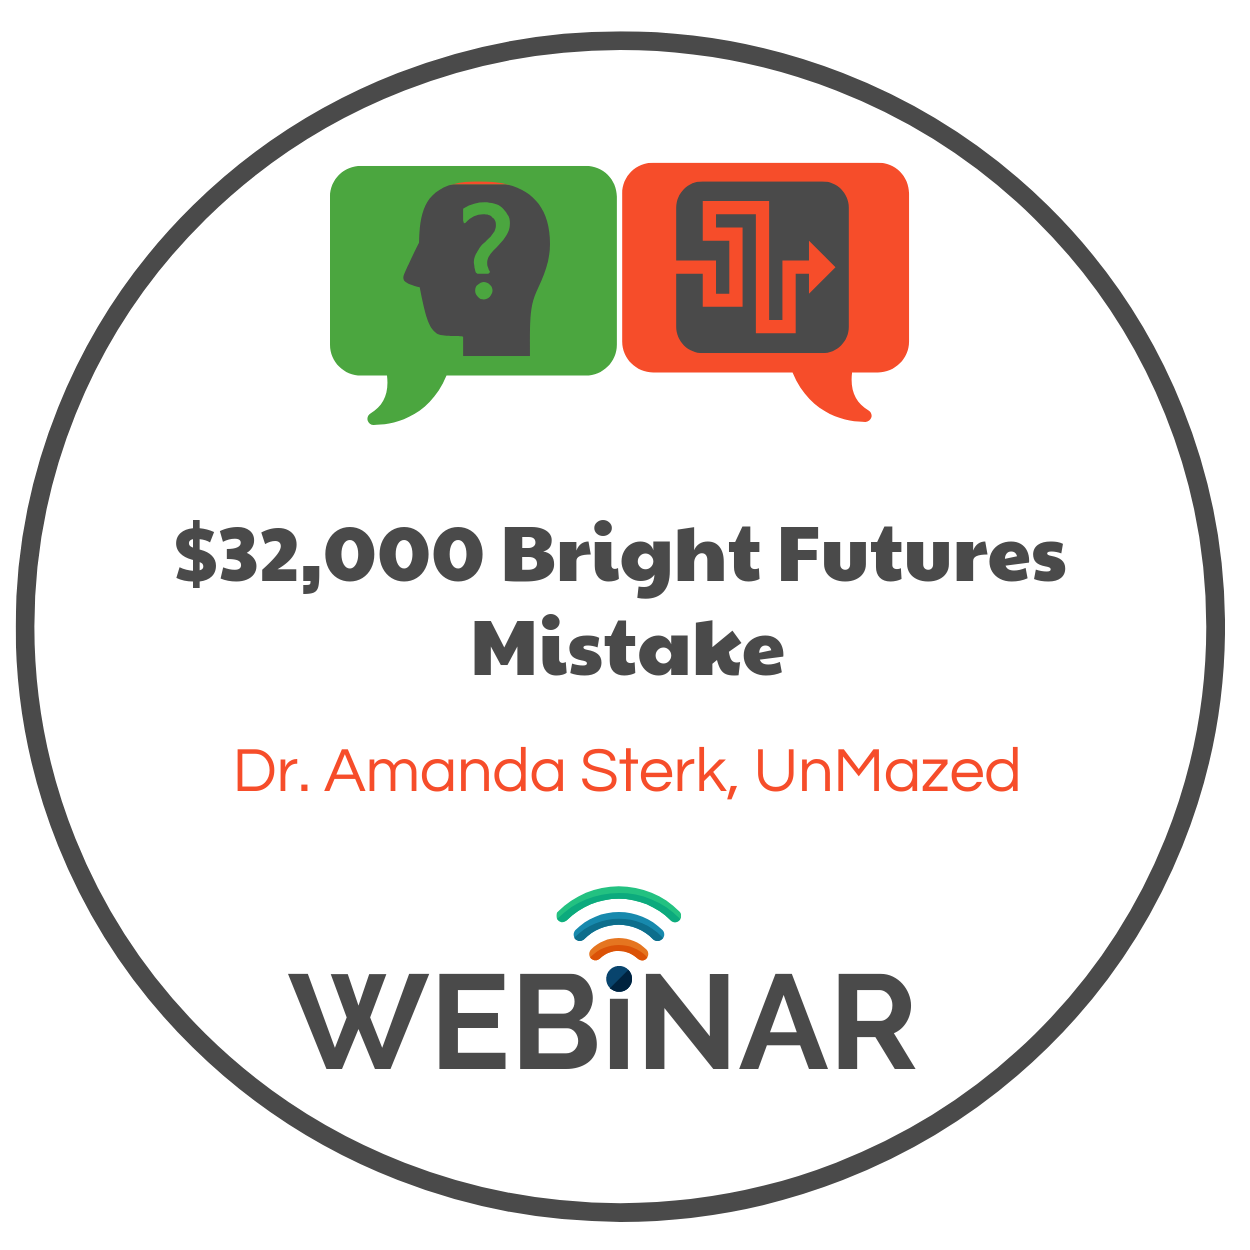 Dr. Amanda Sterk explains how one student's Bright Future mistake cost her $32,000.